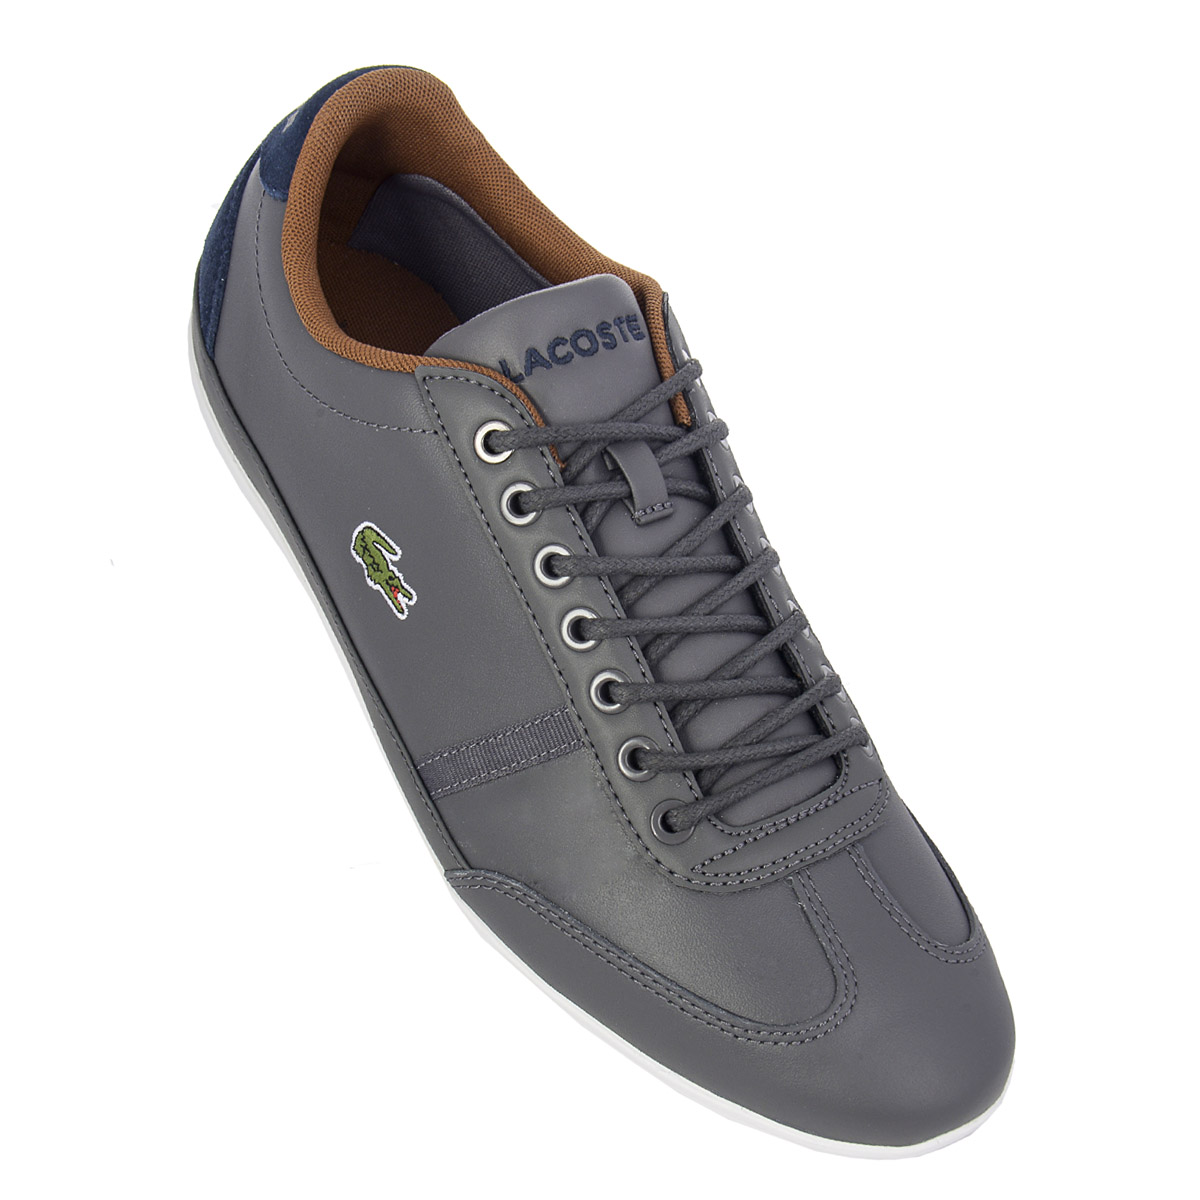 finest selection 87821 78a63 NEW Lacoste Misano Sport CAM0046248 Mens Shoes Trainers Sneakers SALE